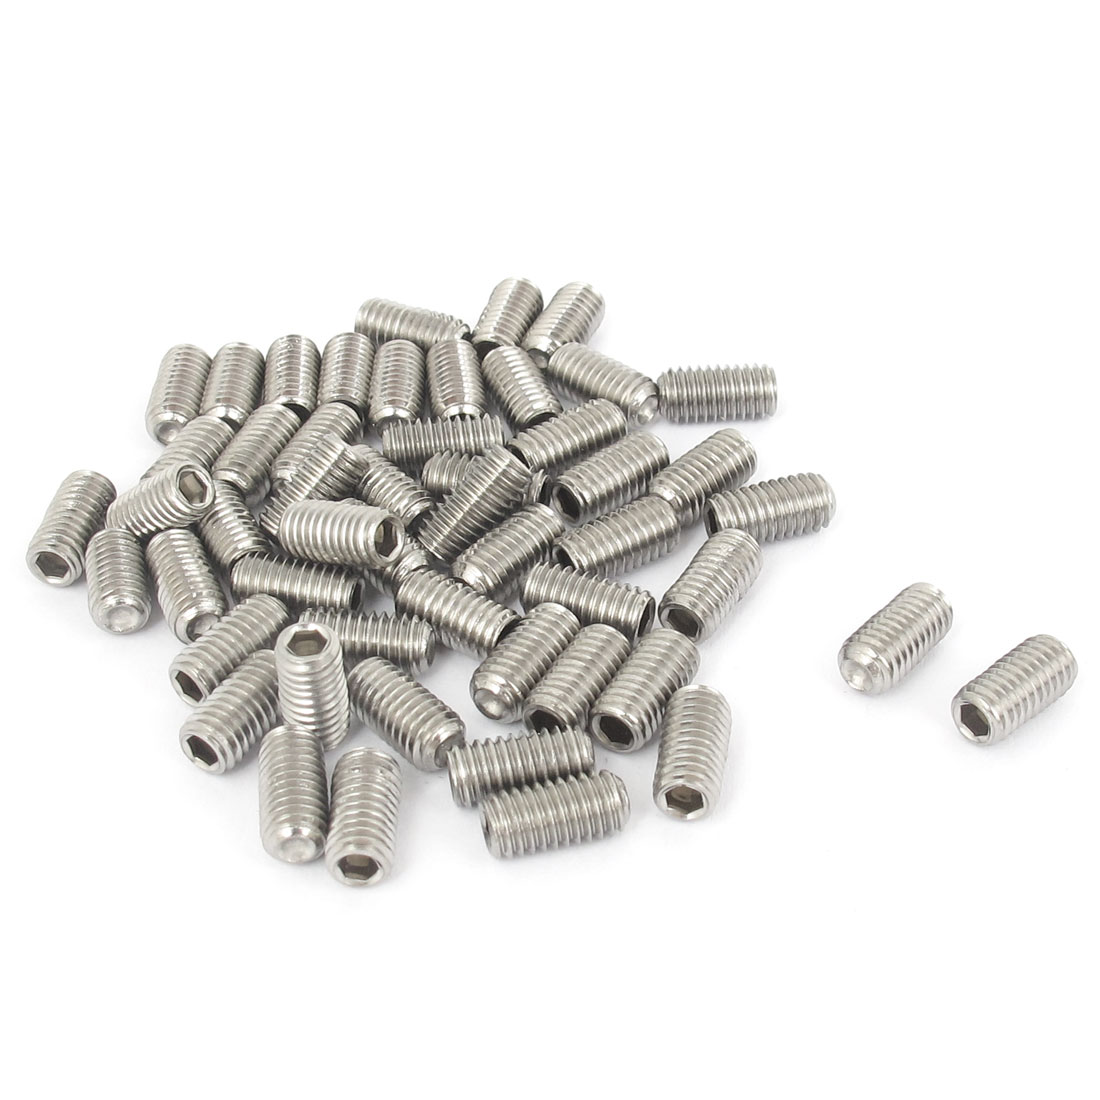 M5x10mm Stainless Steel Hex Socket Set Cap Point Grub Screws Silver Tone 50pcs